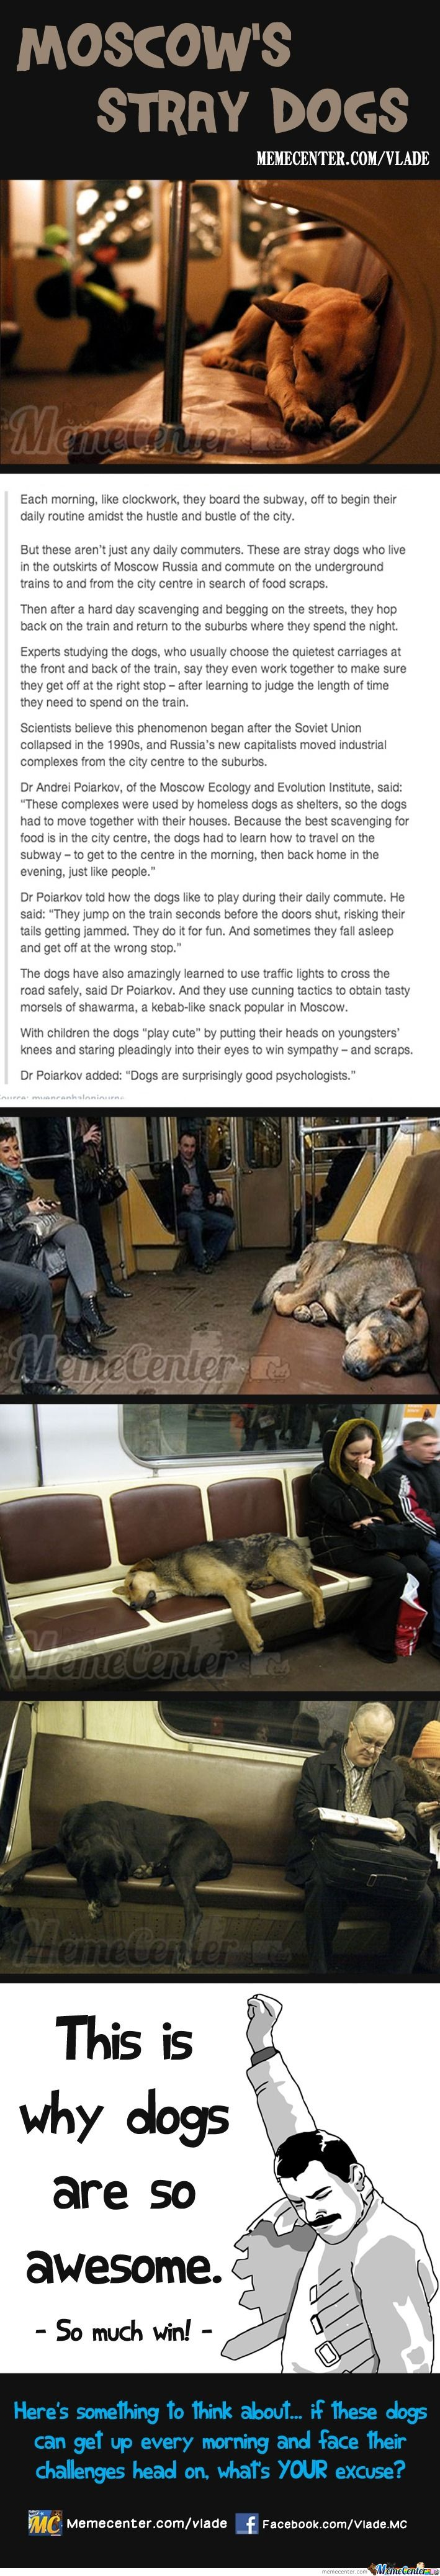 Moscow's Stray Dogs